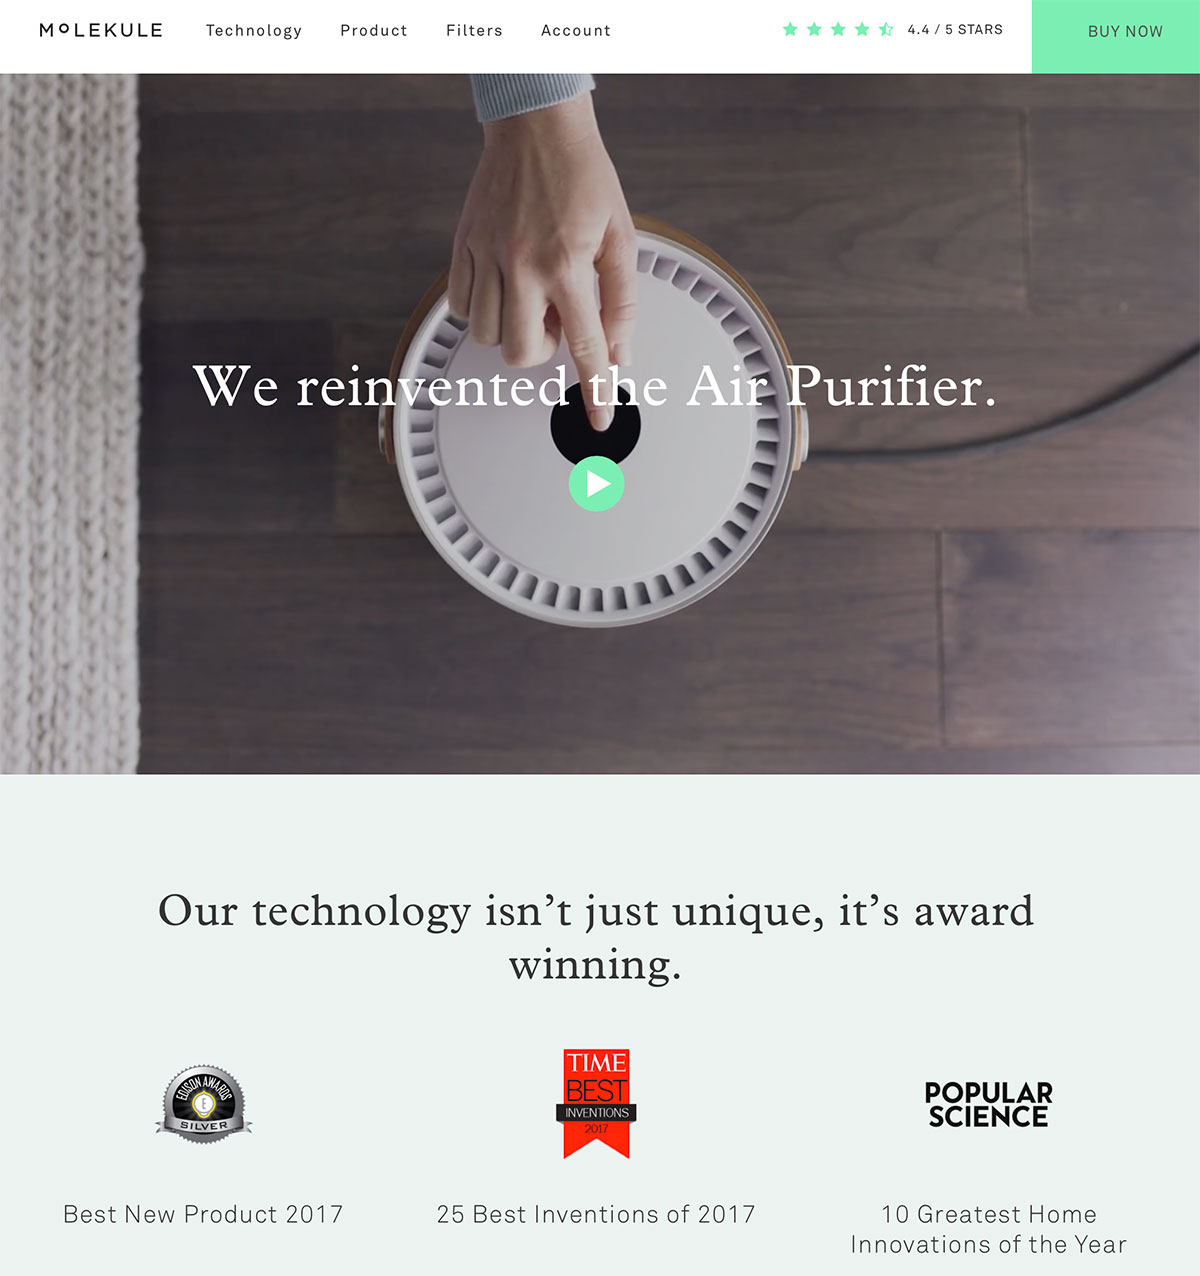 Molekule uses awards and recognition to instill trust, which helps sell its product.